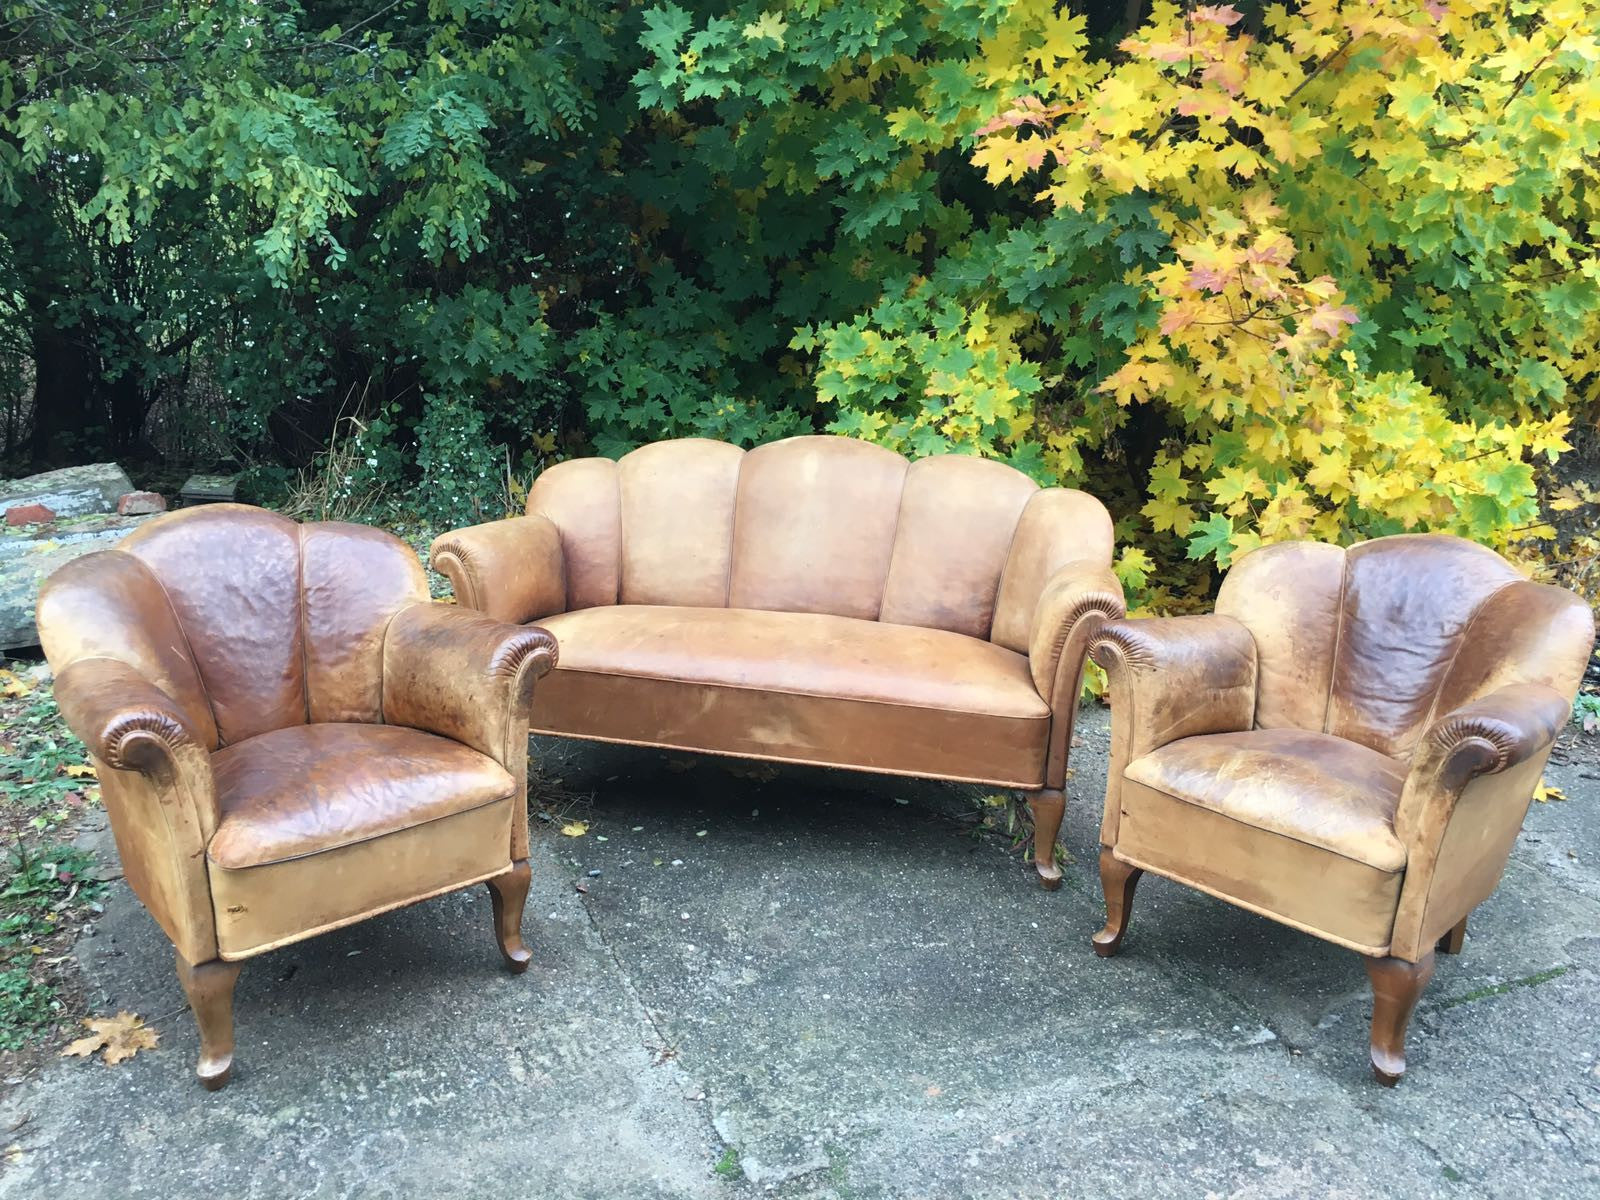 Vintage industrial French 1940s leather lounge set #1601